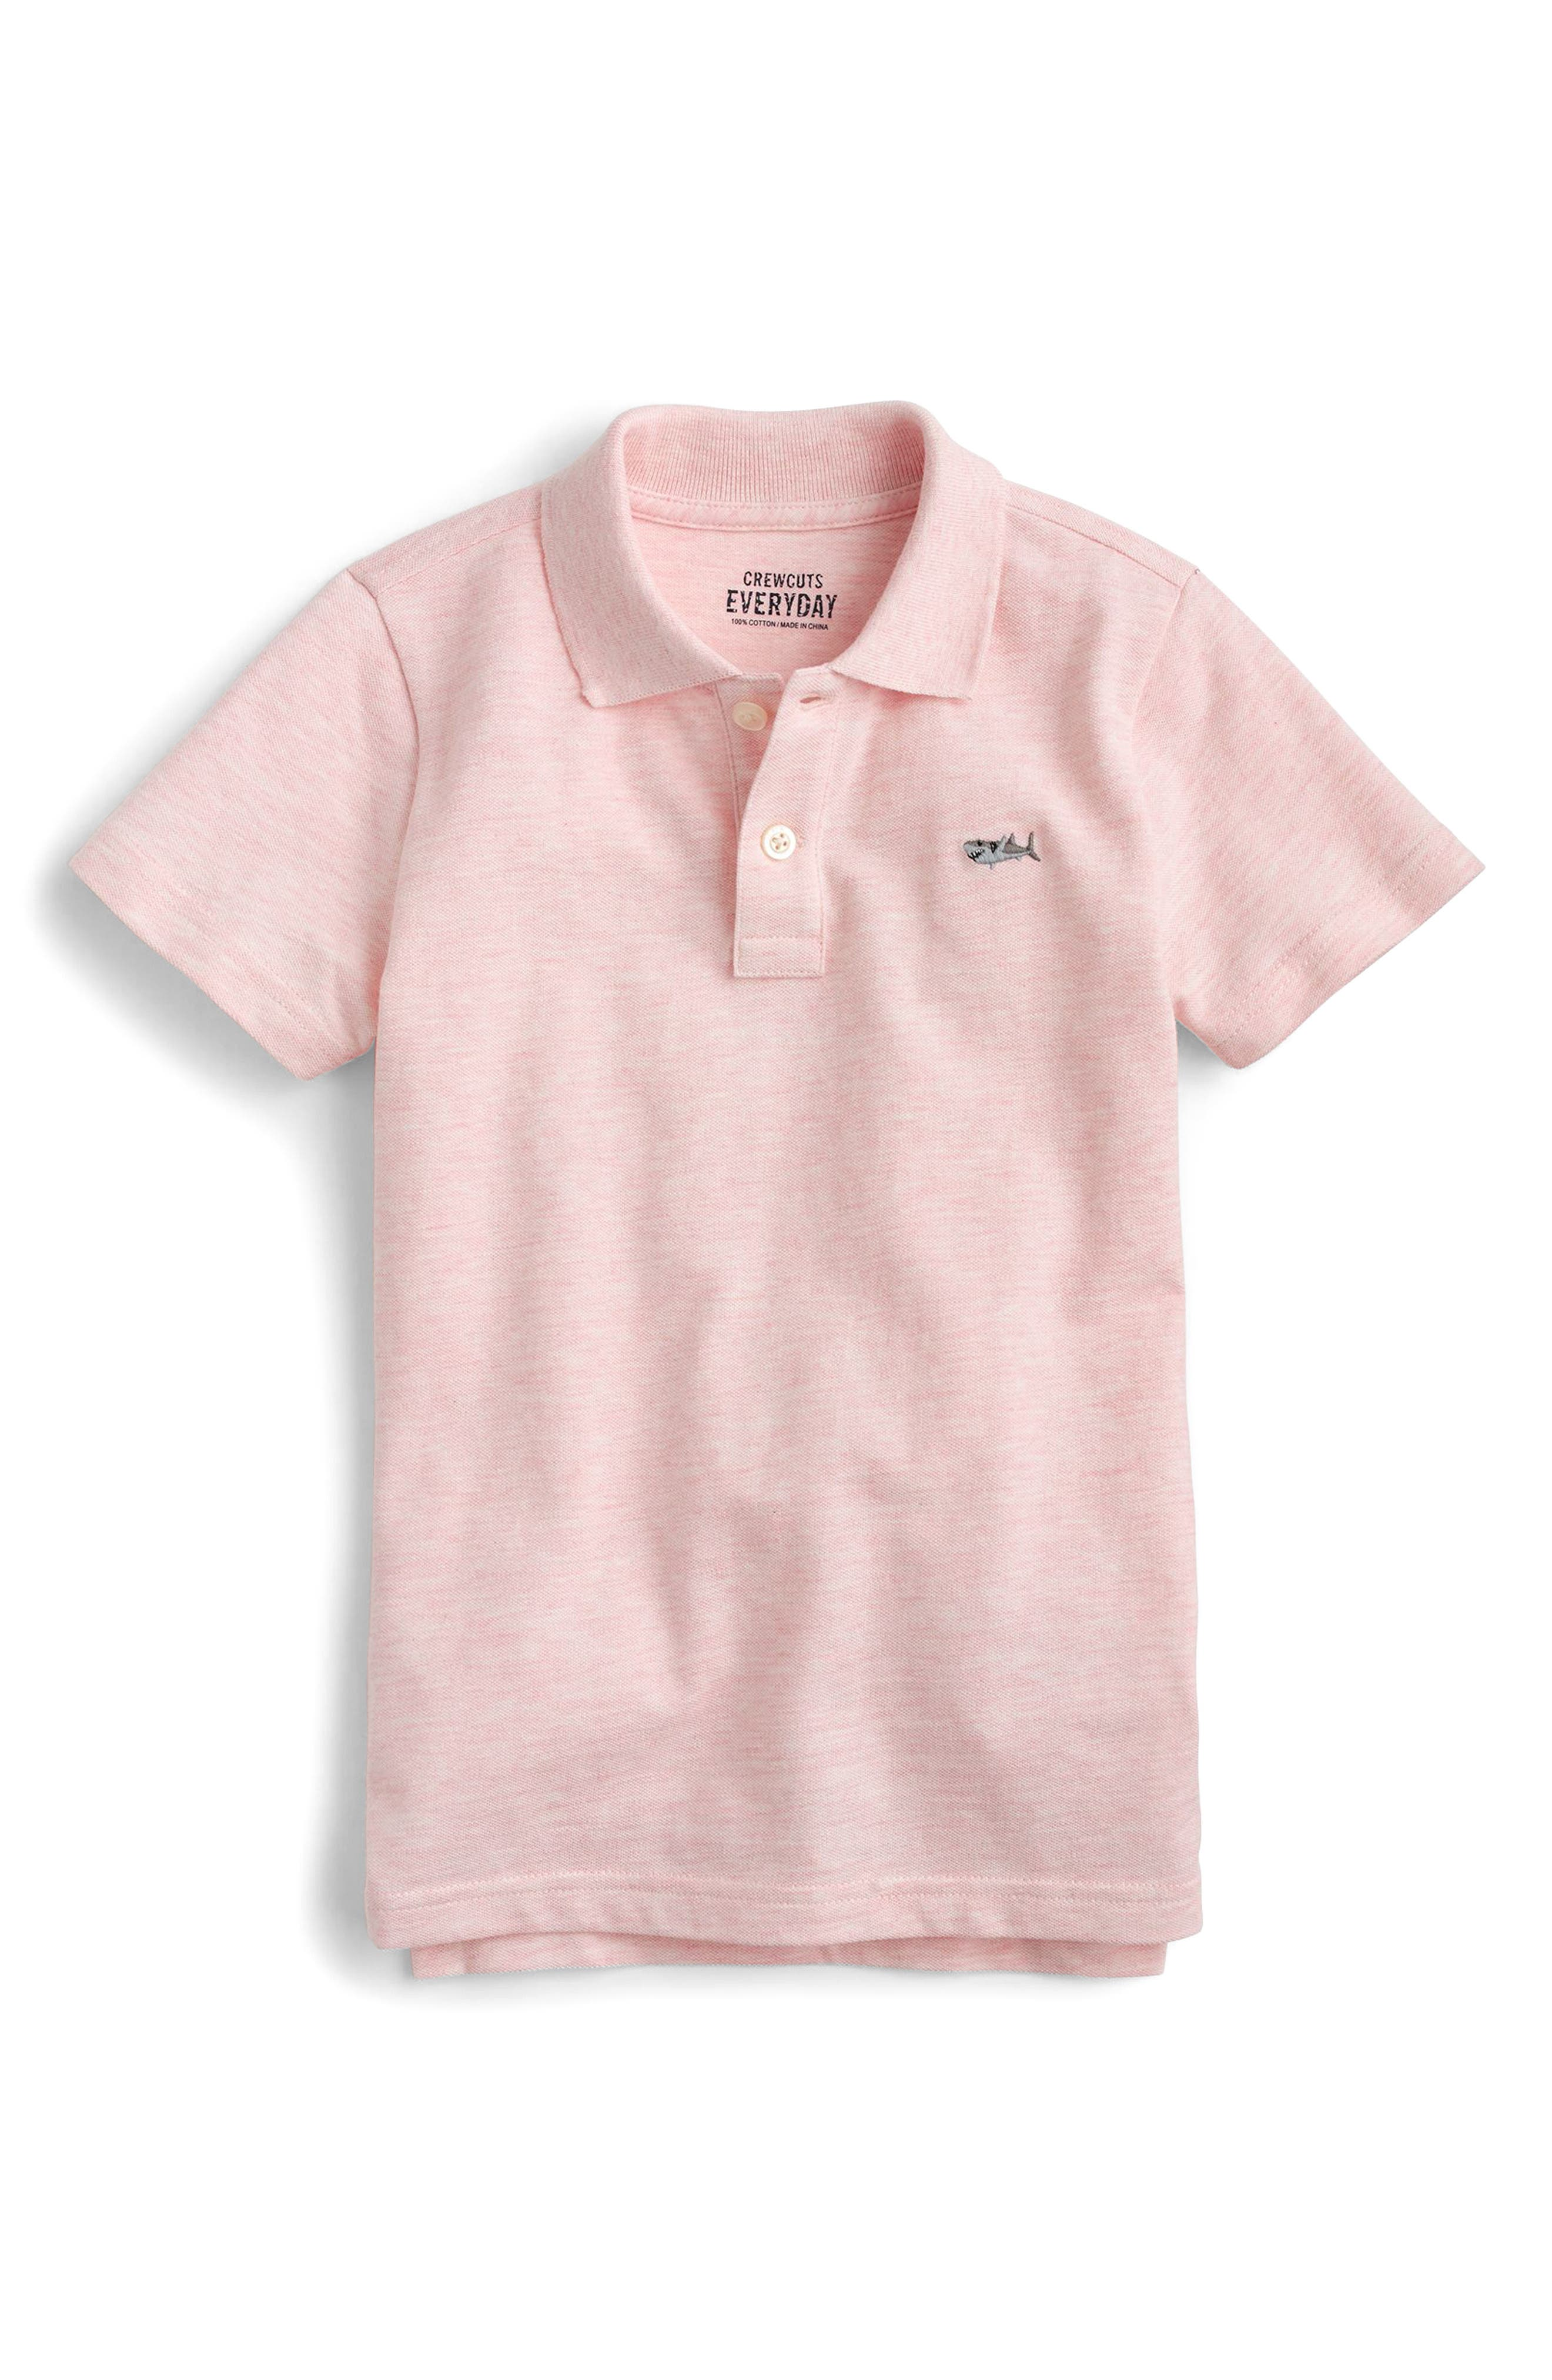 Alternate Image 1 Selected - crewcuts by J.Crew Critter Polo (Toddler Boys, Little Boys & Big Boys)